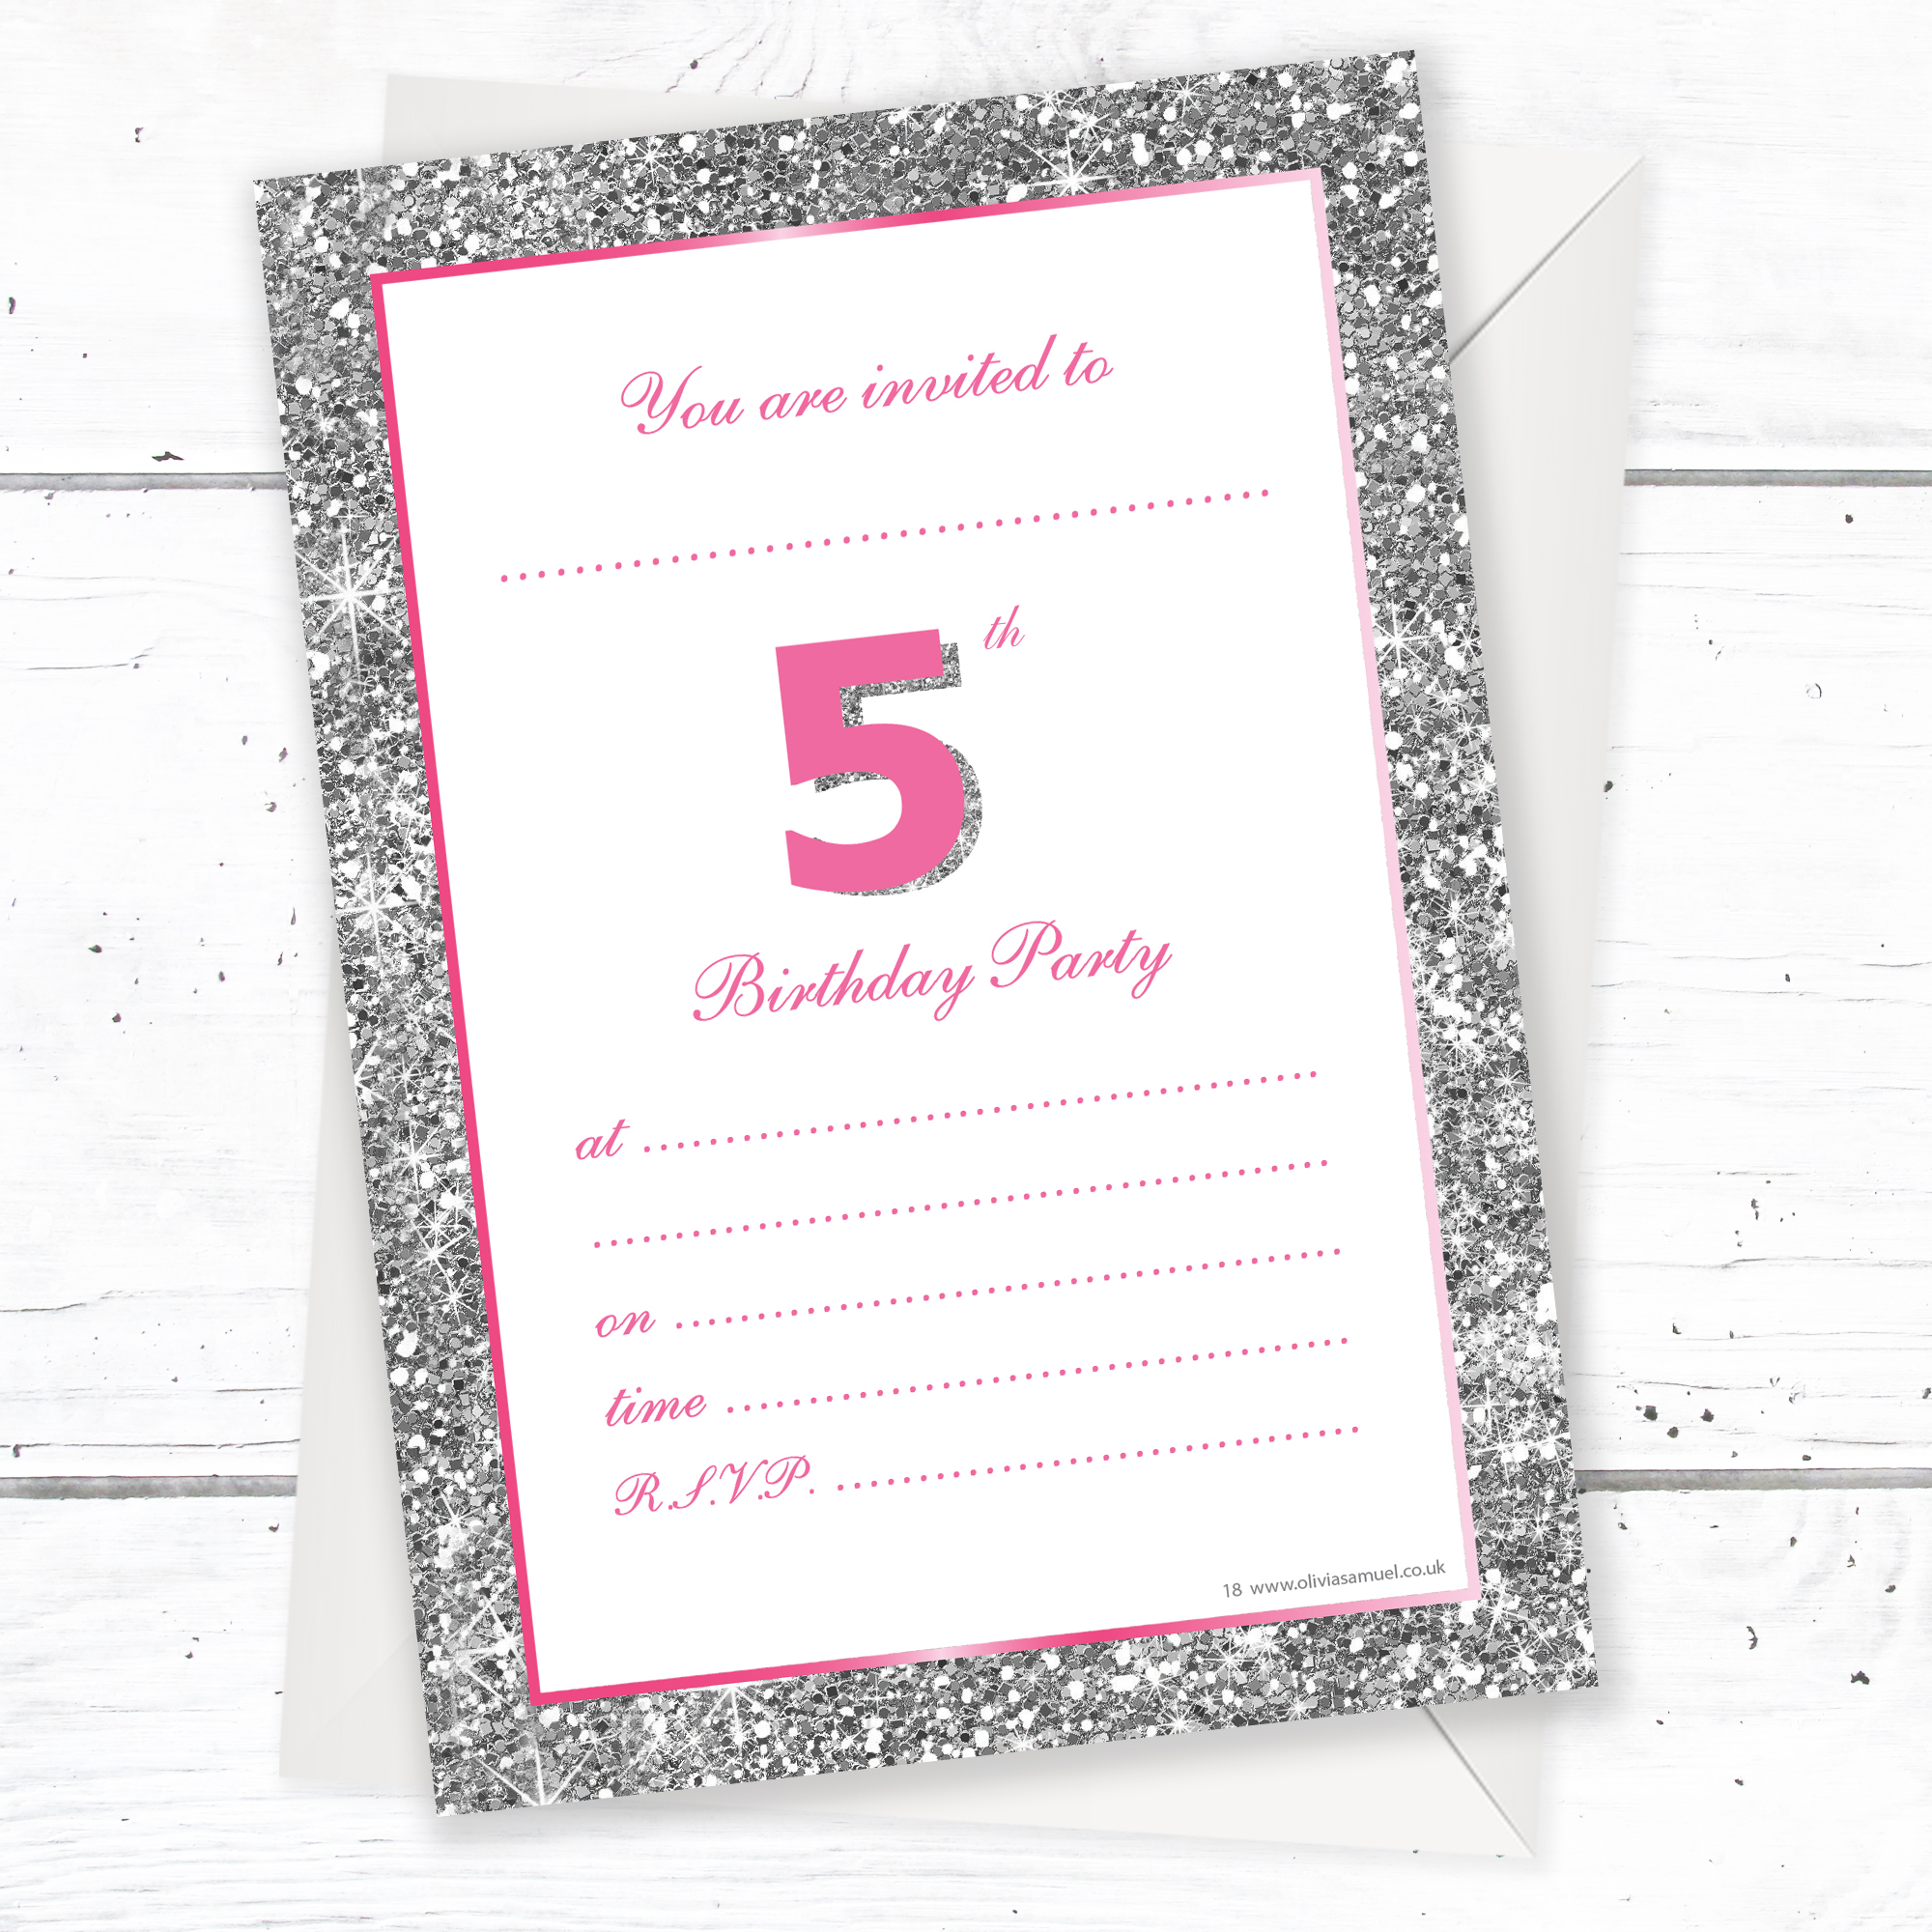 5th Birthday Party Invitations – Pink Sparkly Design and Photo ...